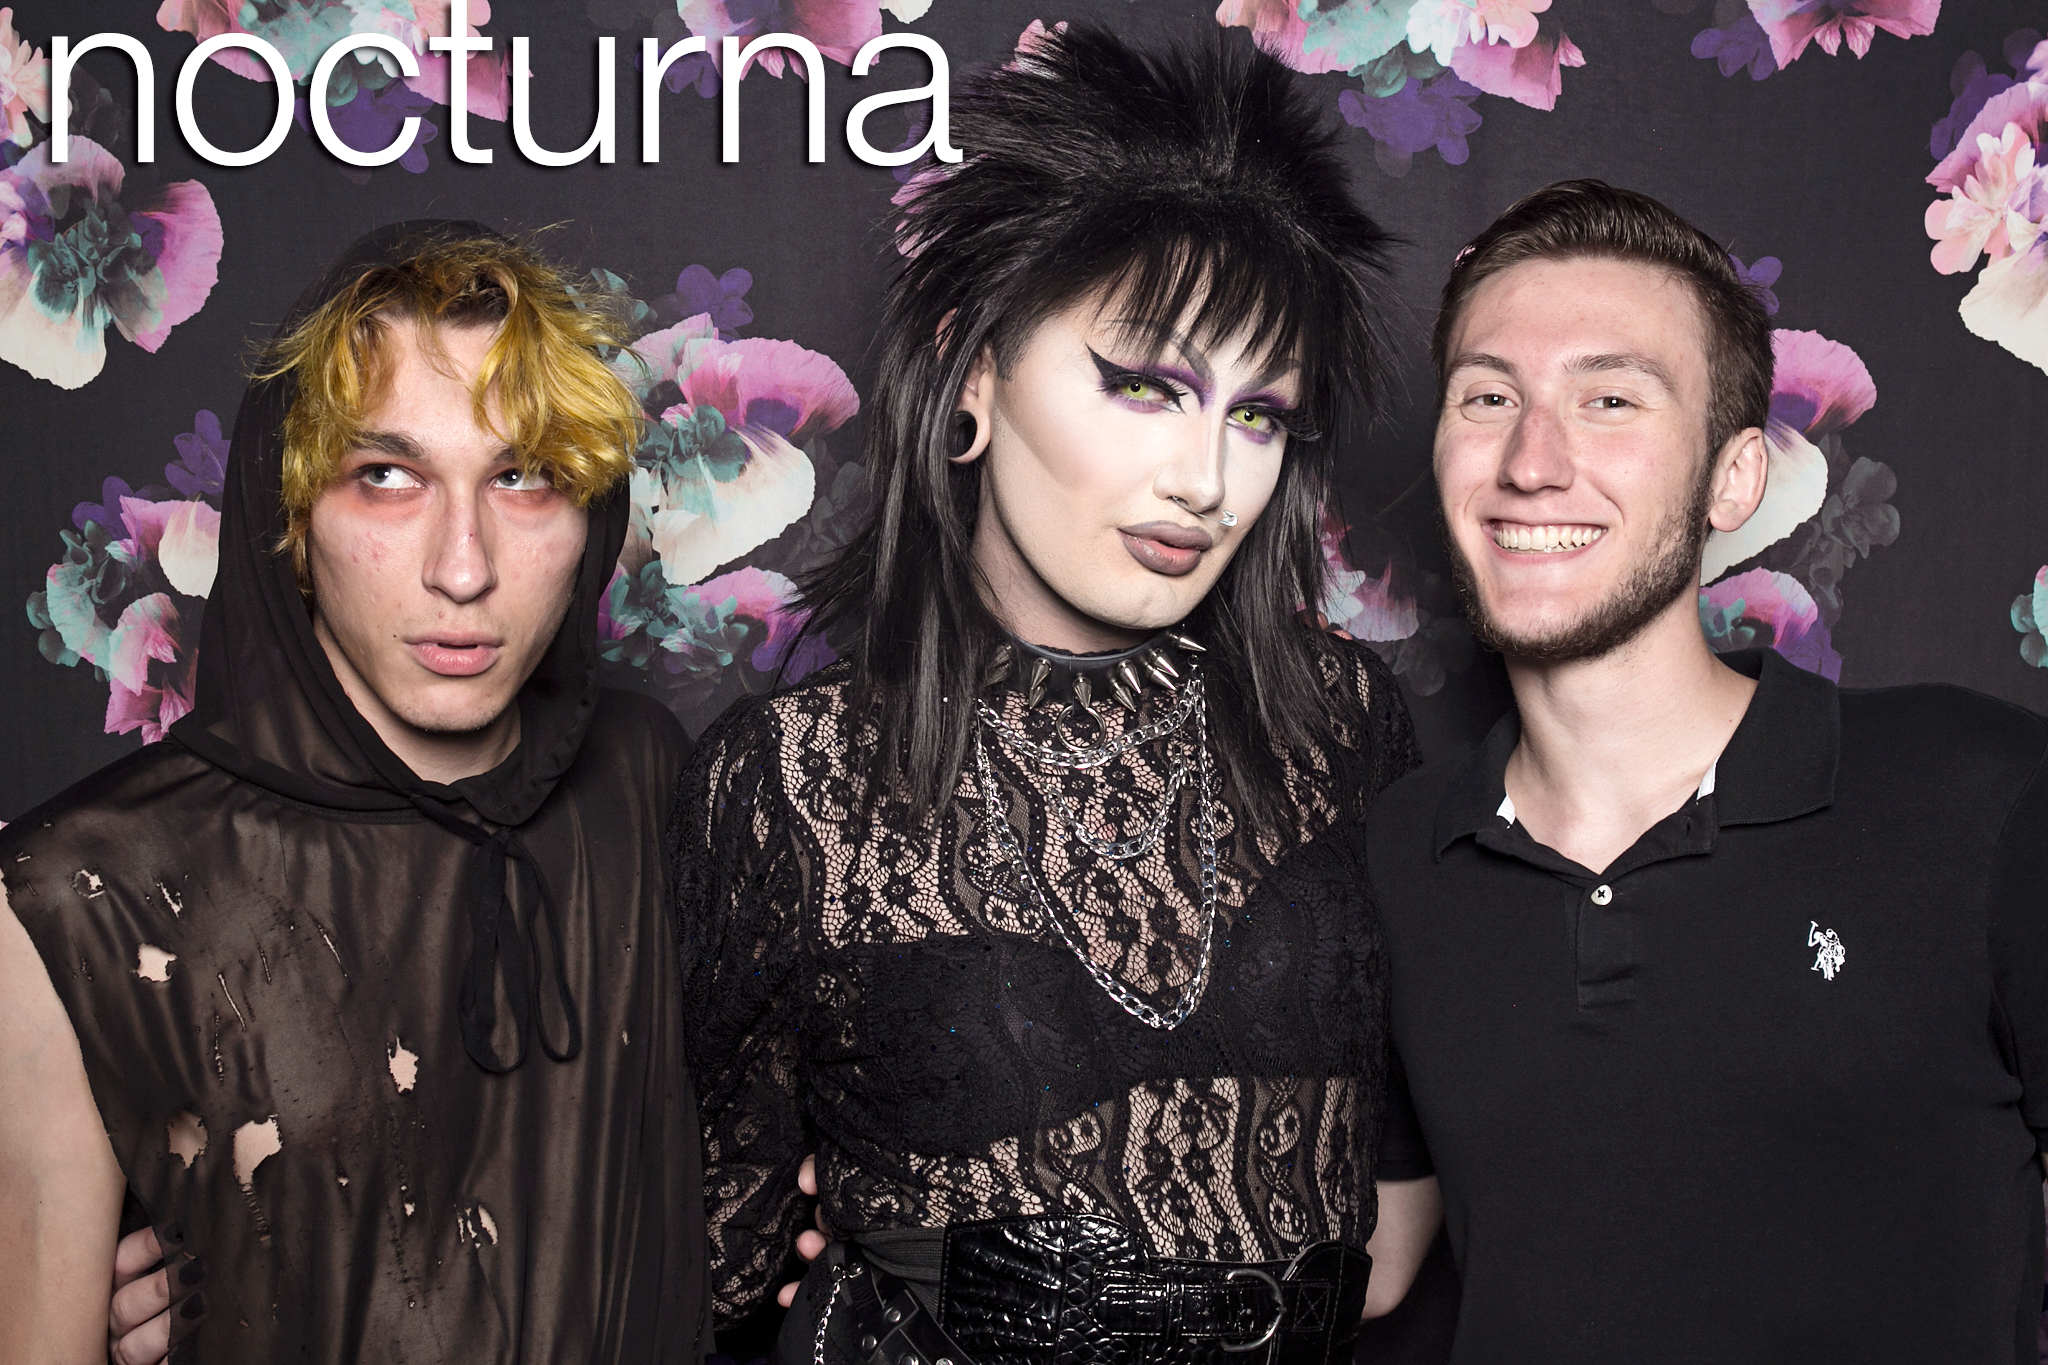 glitterguts portrait booth photos from nocturna at metro chicago, june 2019